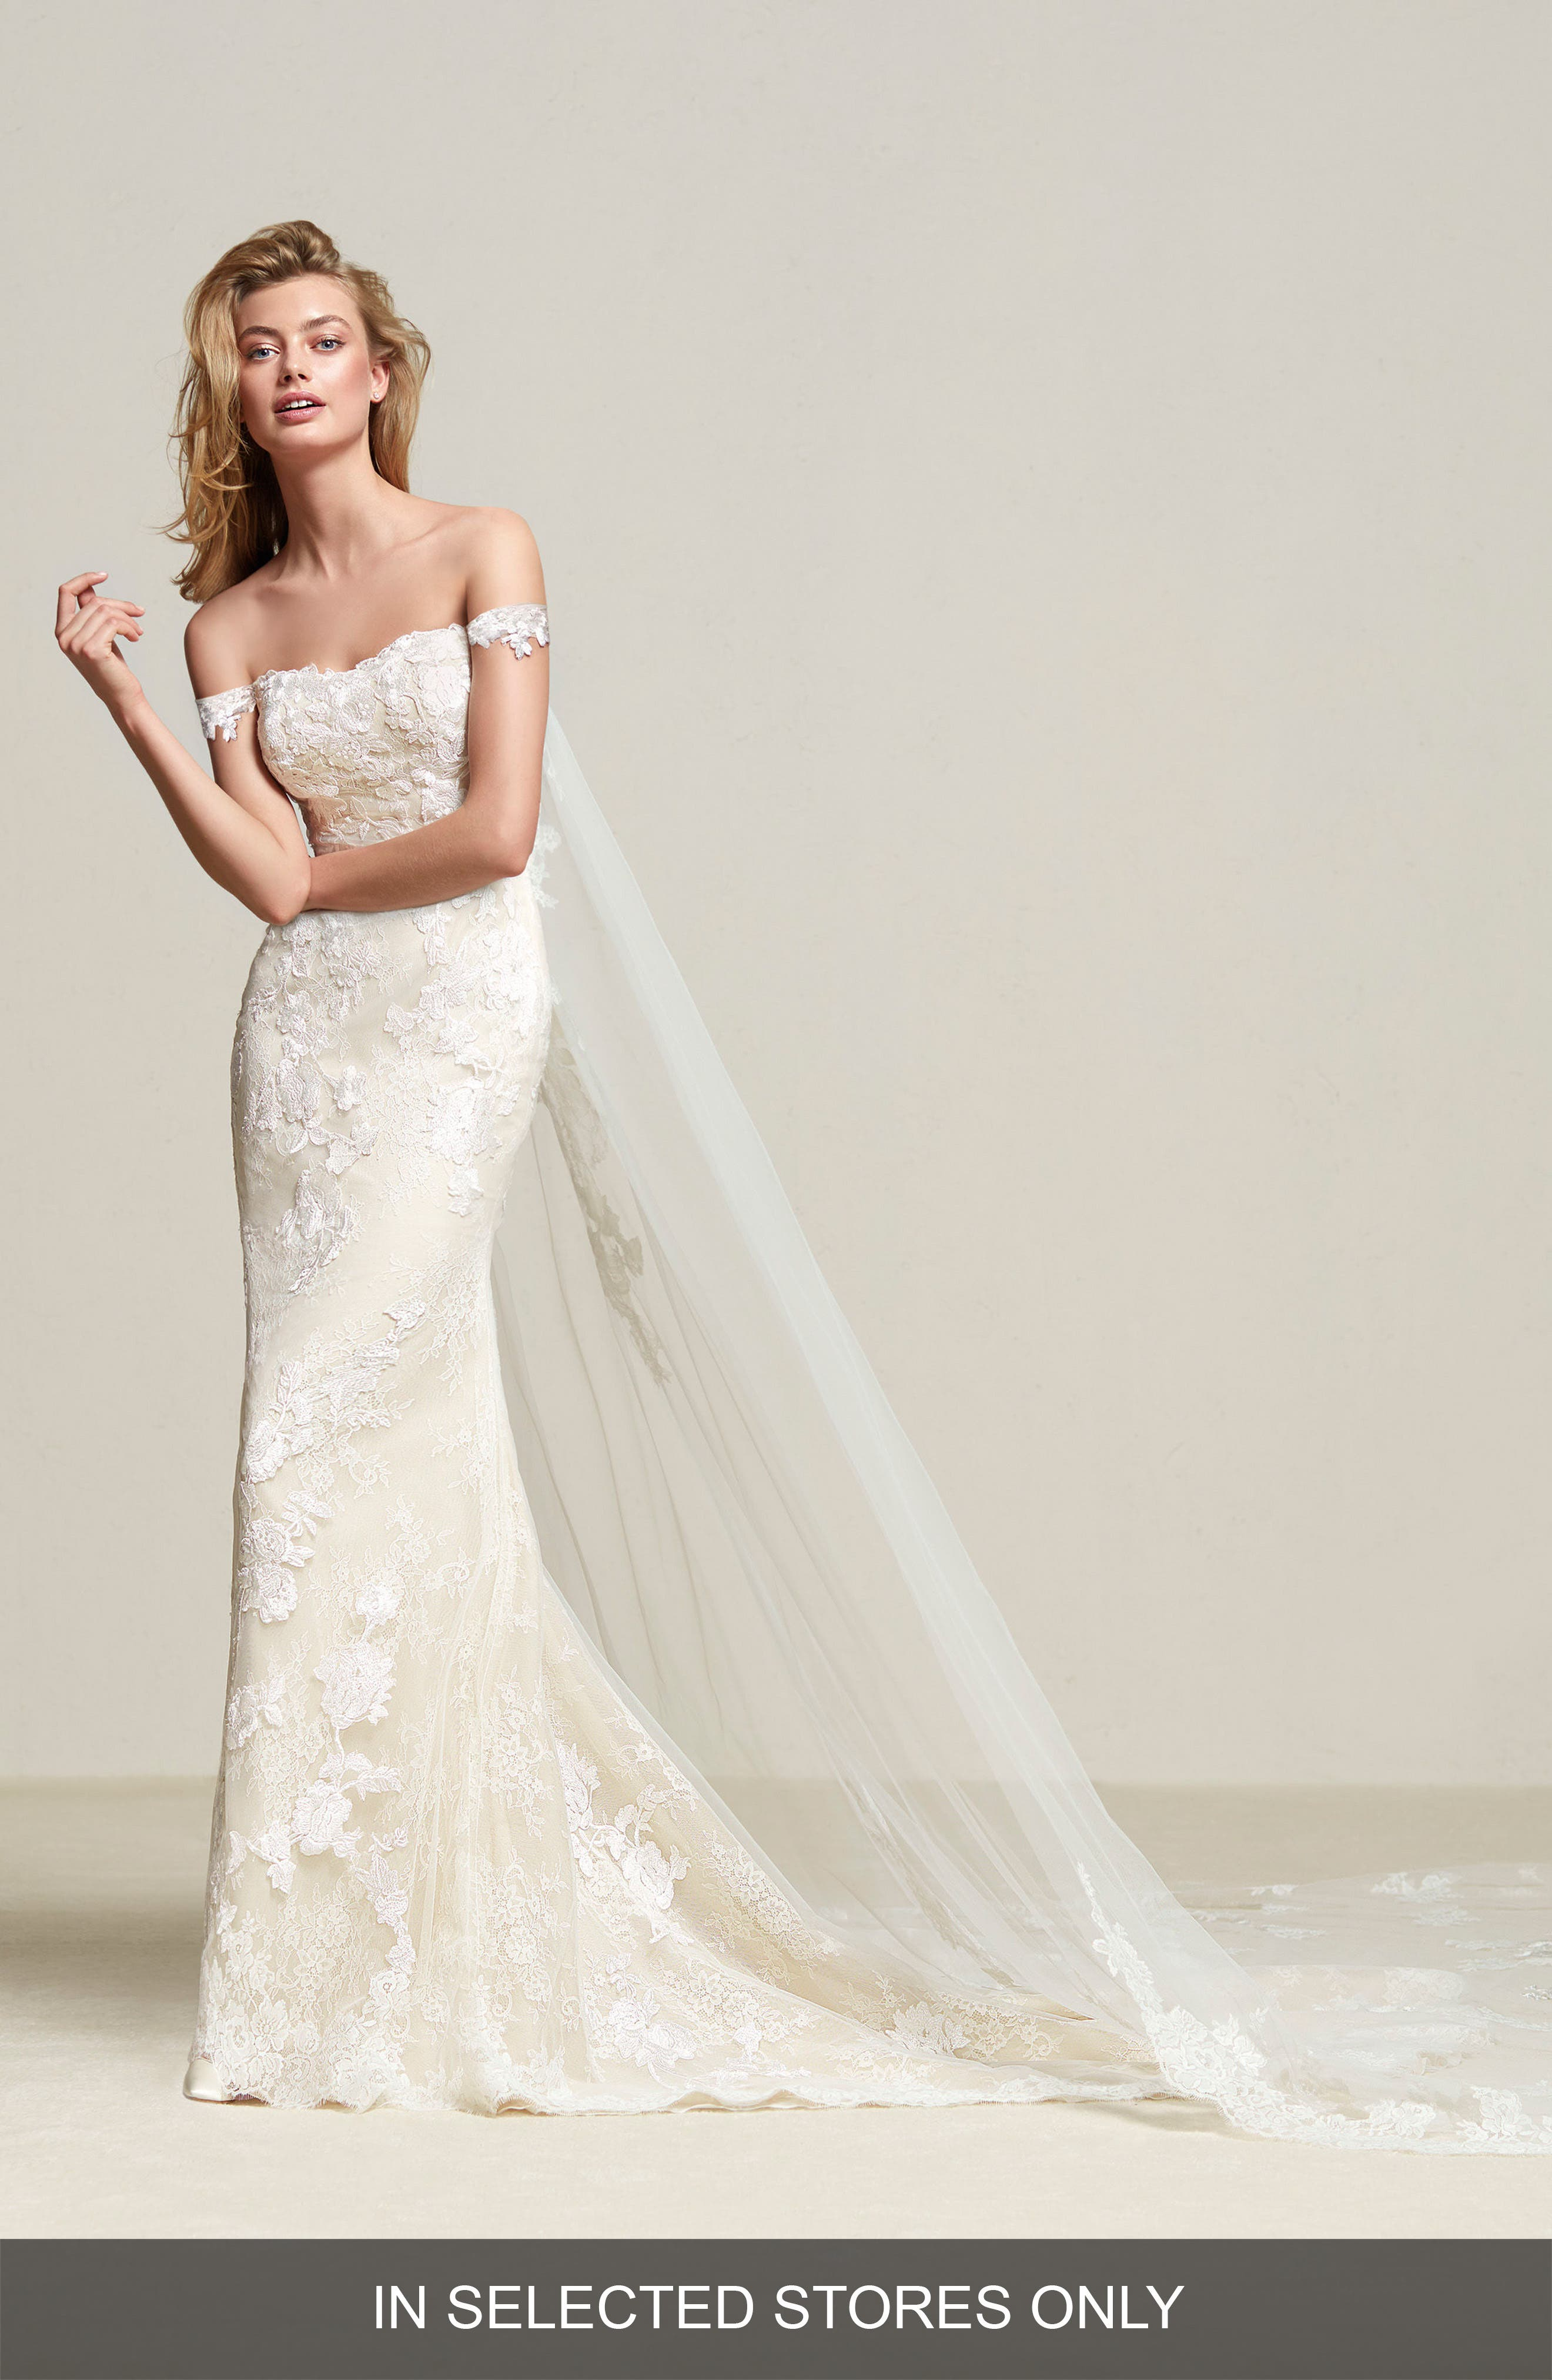 Dria Off the Shoulder Mermaid Gown with Detachable Train,                         Main,                         color, Off White/Beige